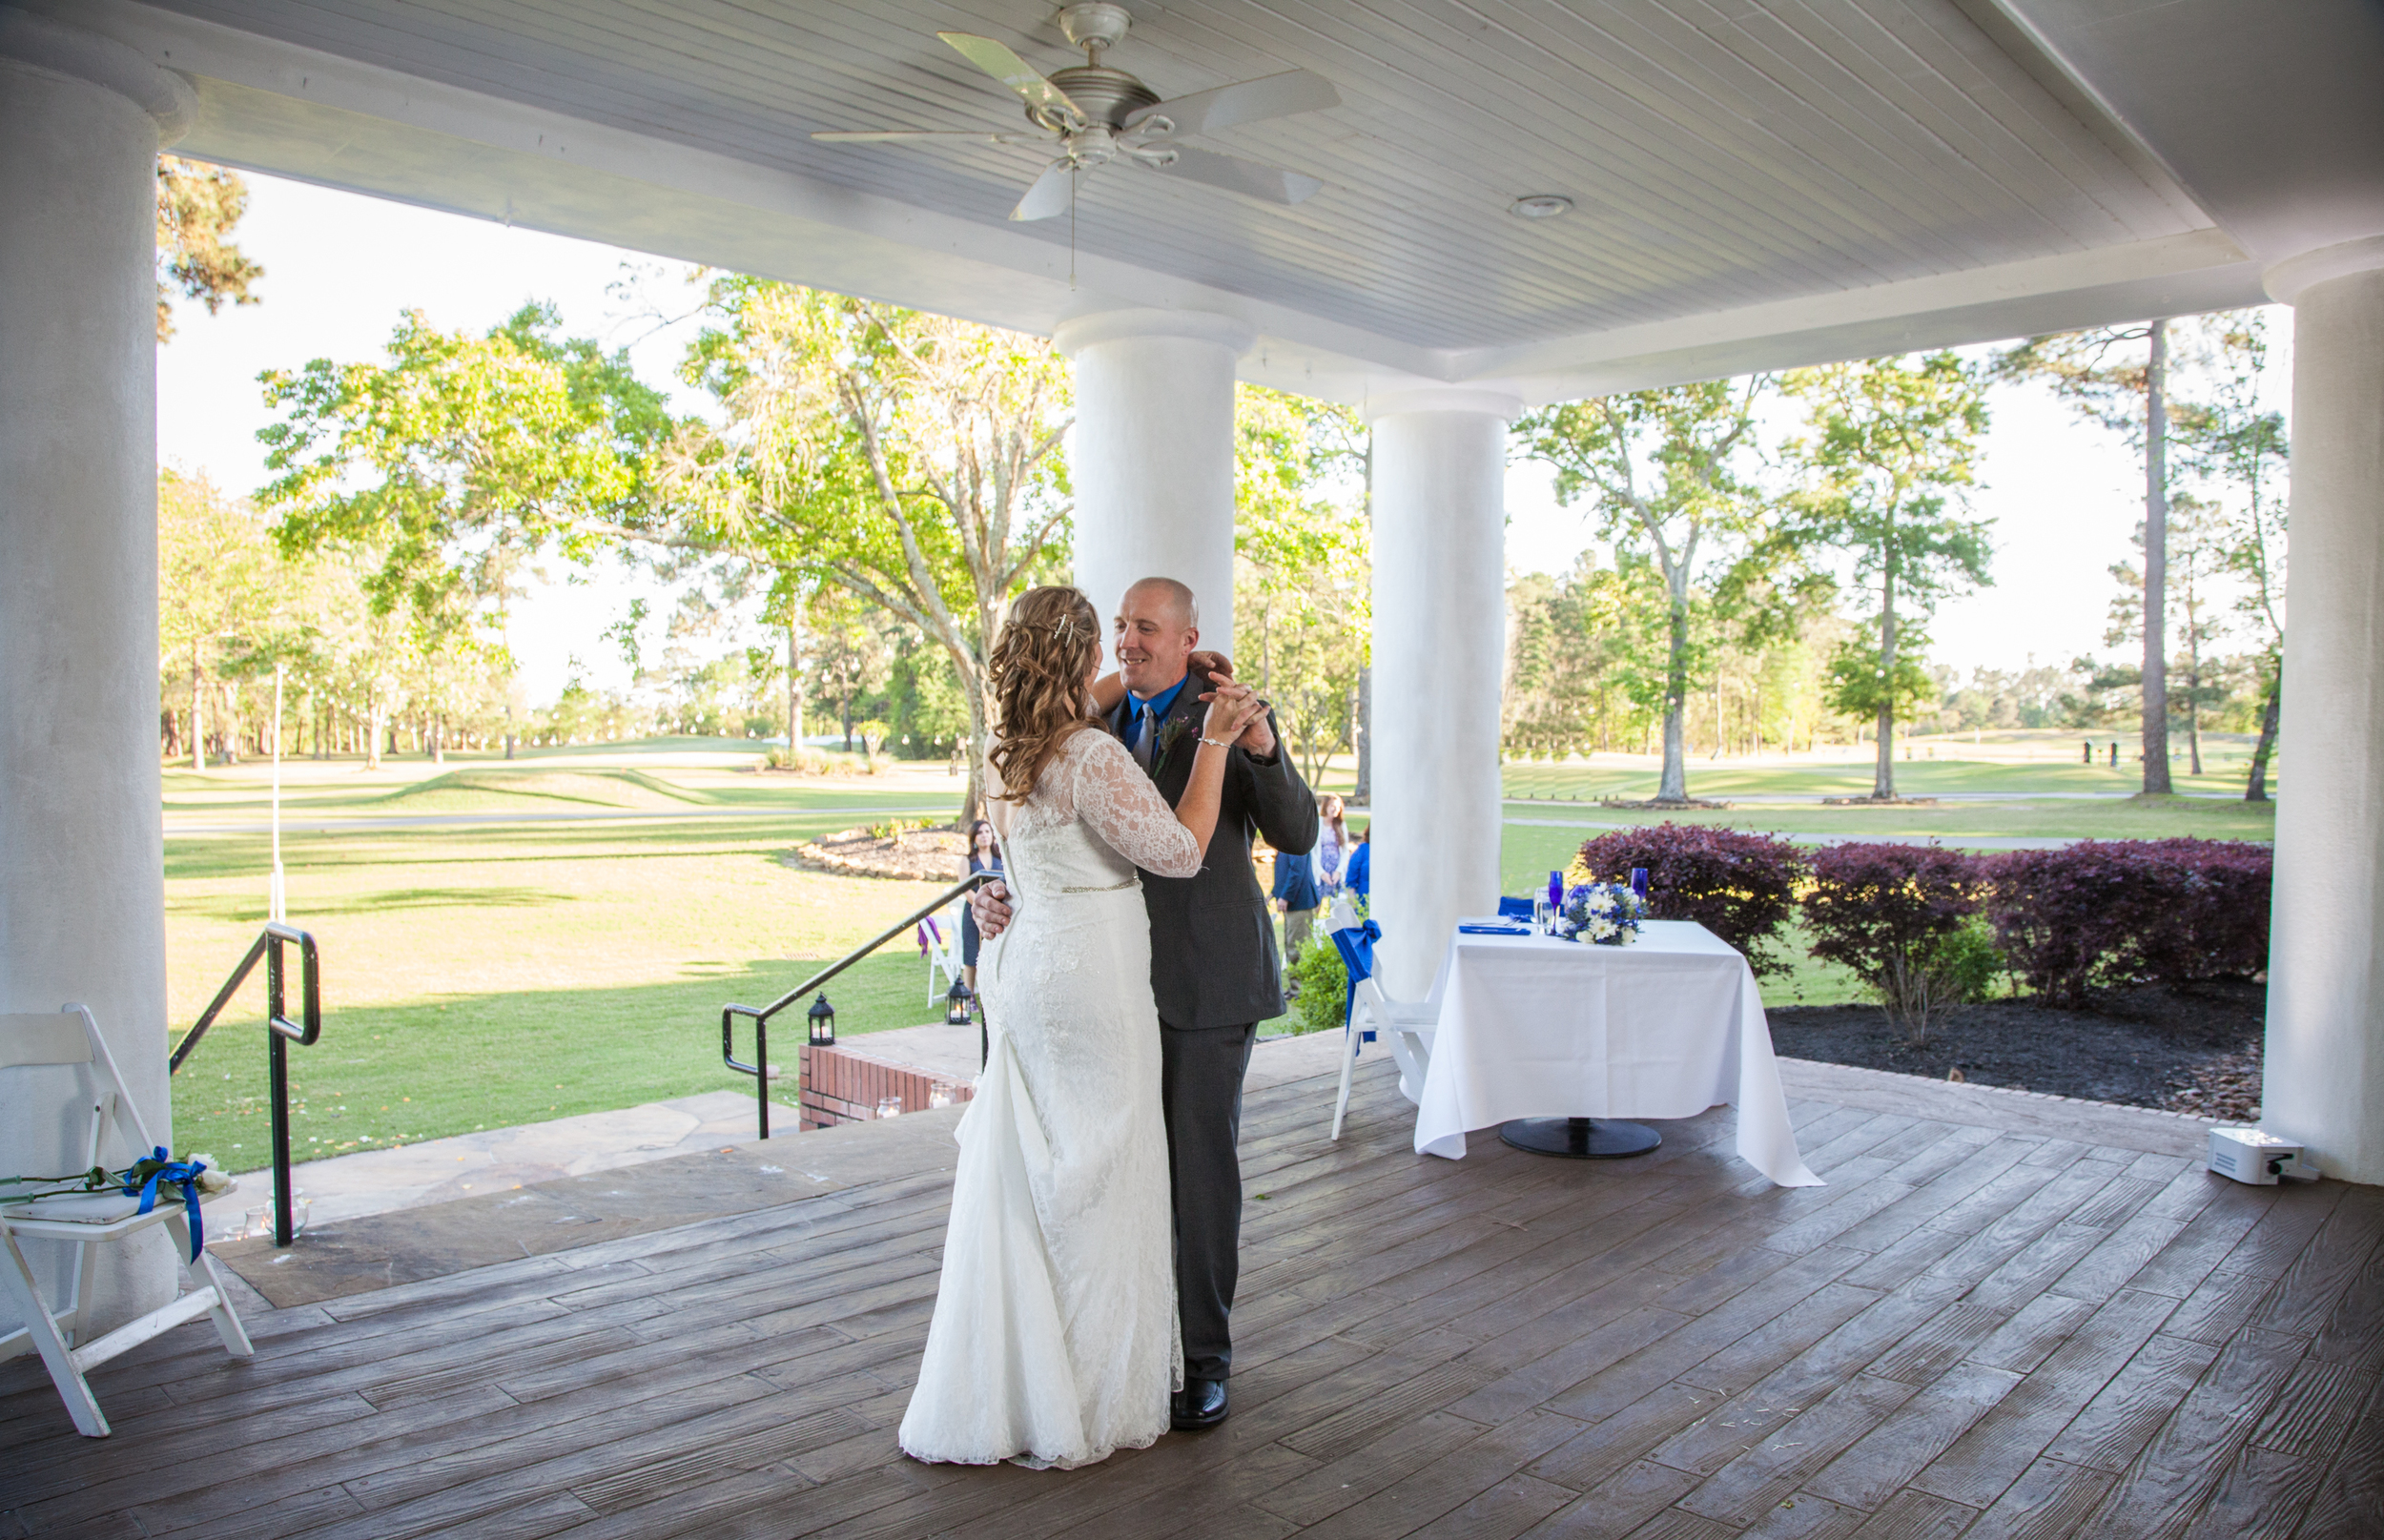 The couple dance for the first time together on the dance floor as husband and wife. The golf course is beautifully lit in the background as the sun sets.